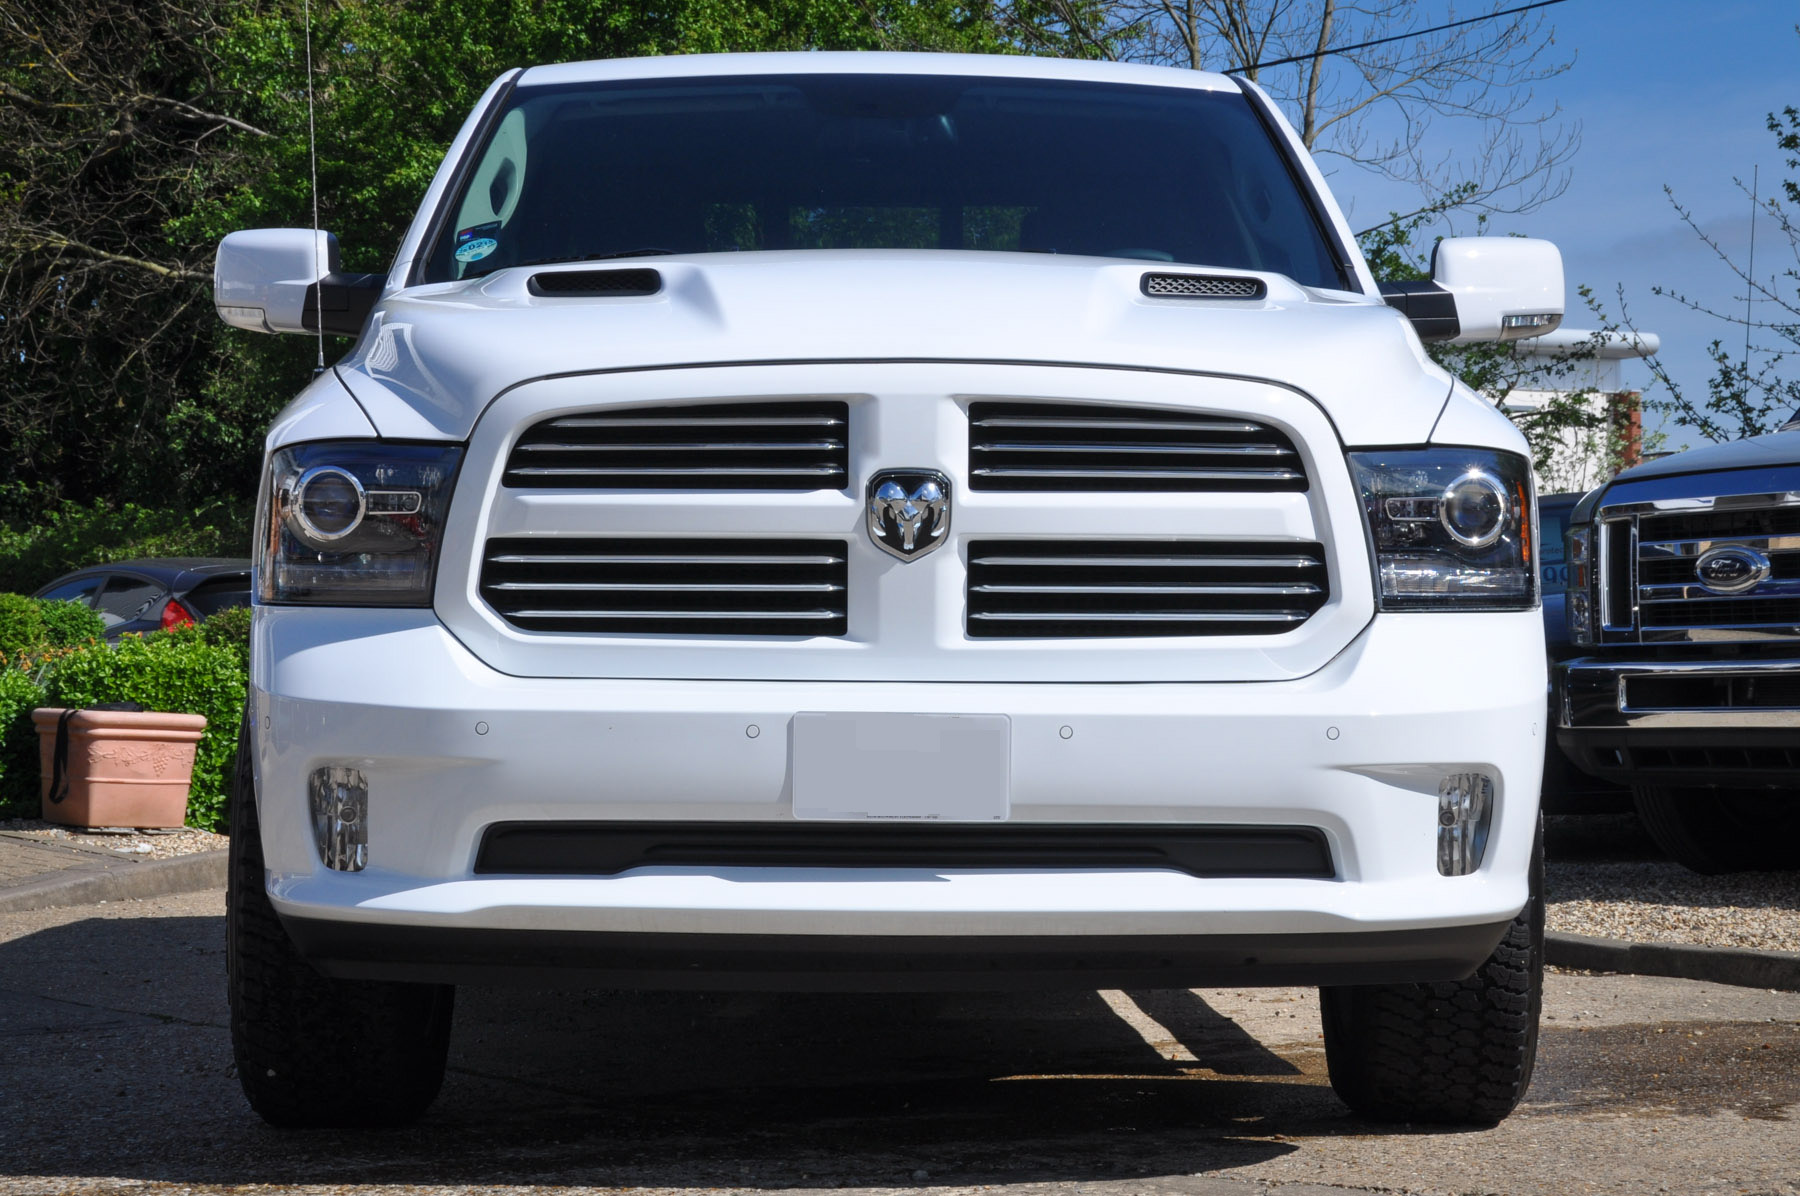 New Dodge Ram Sport in White